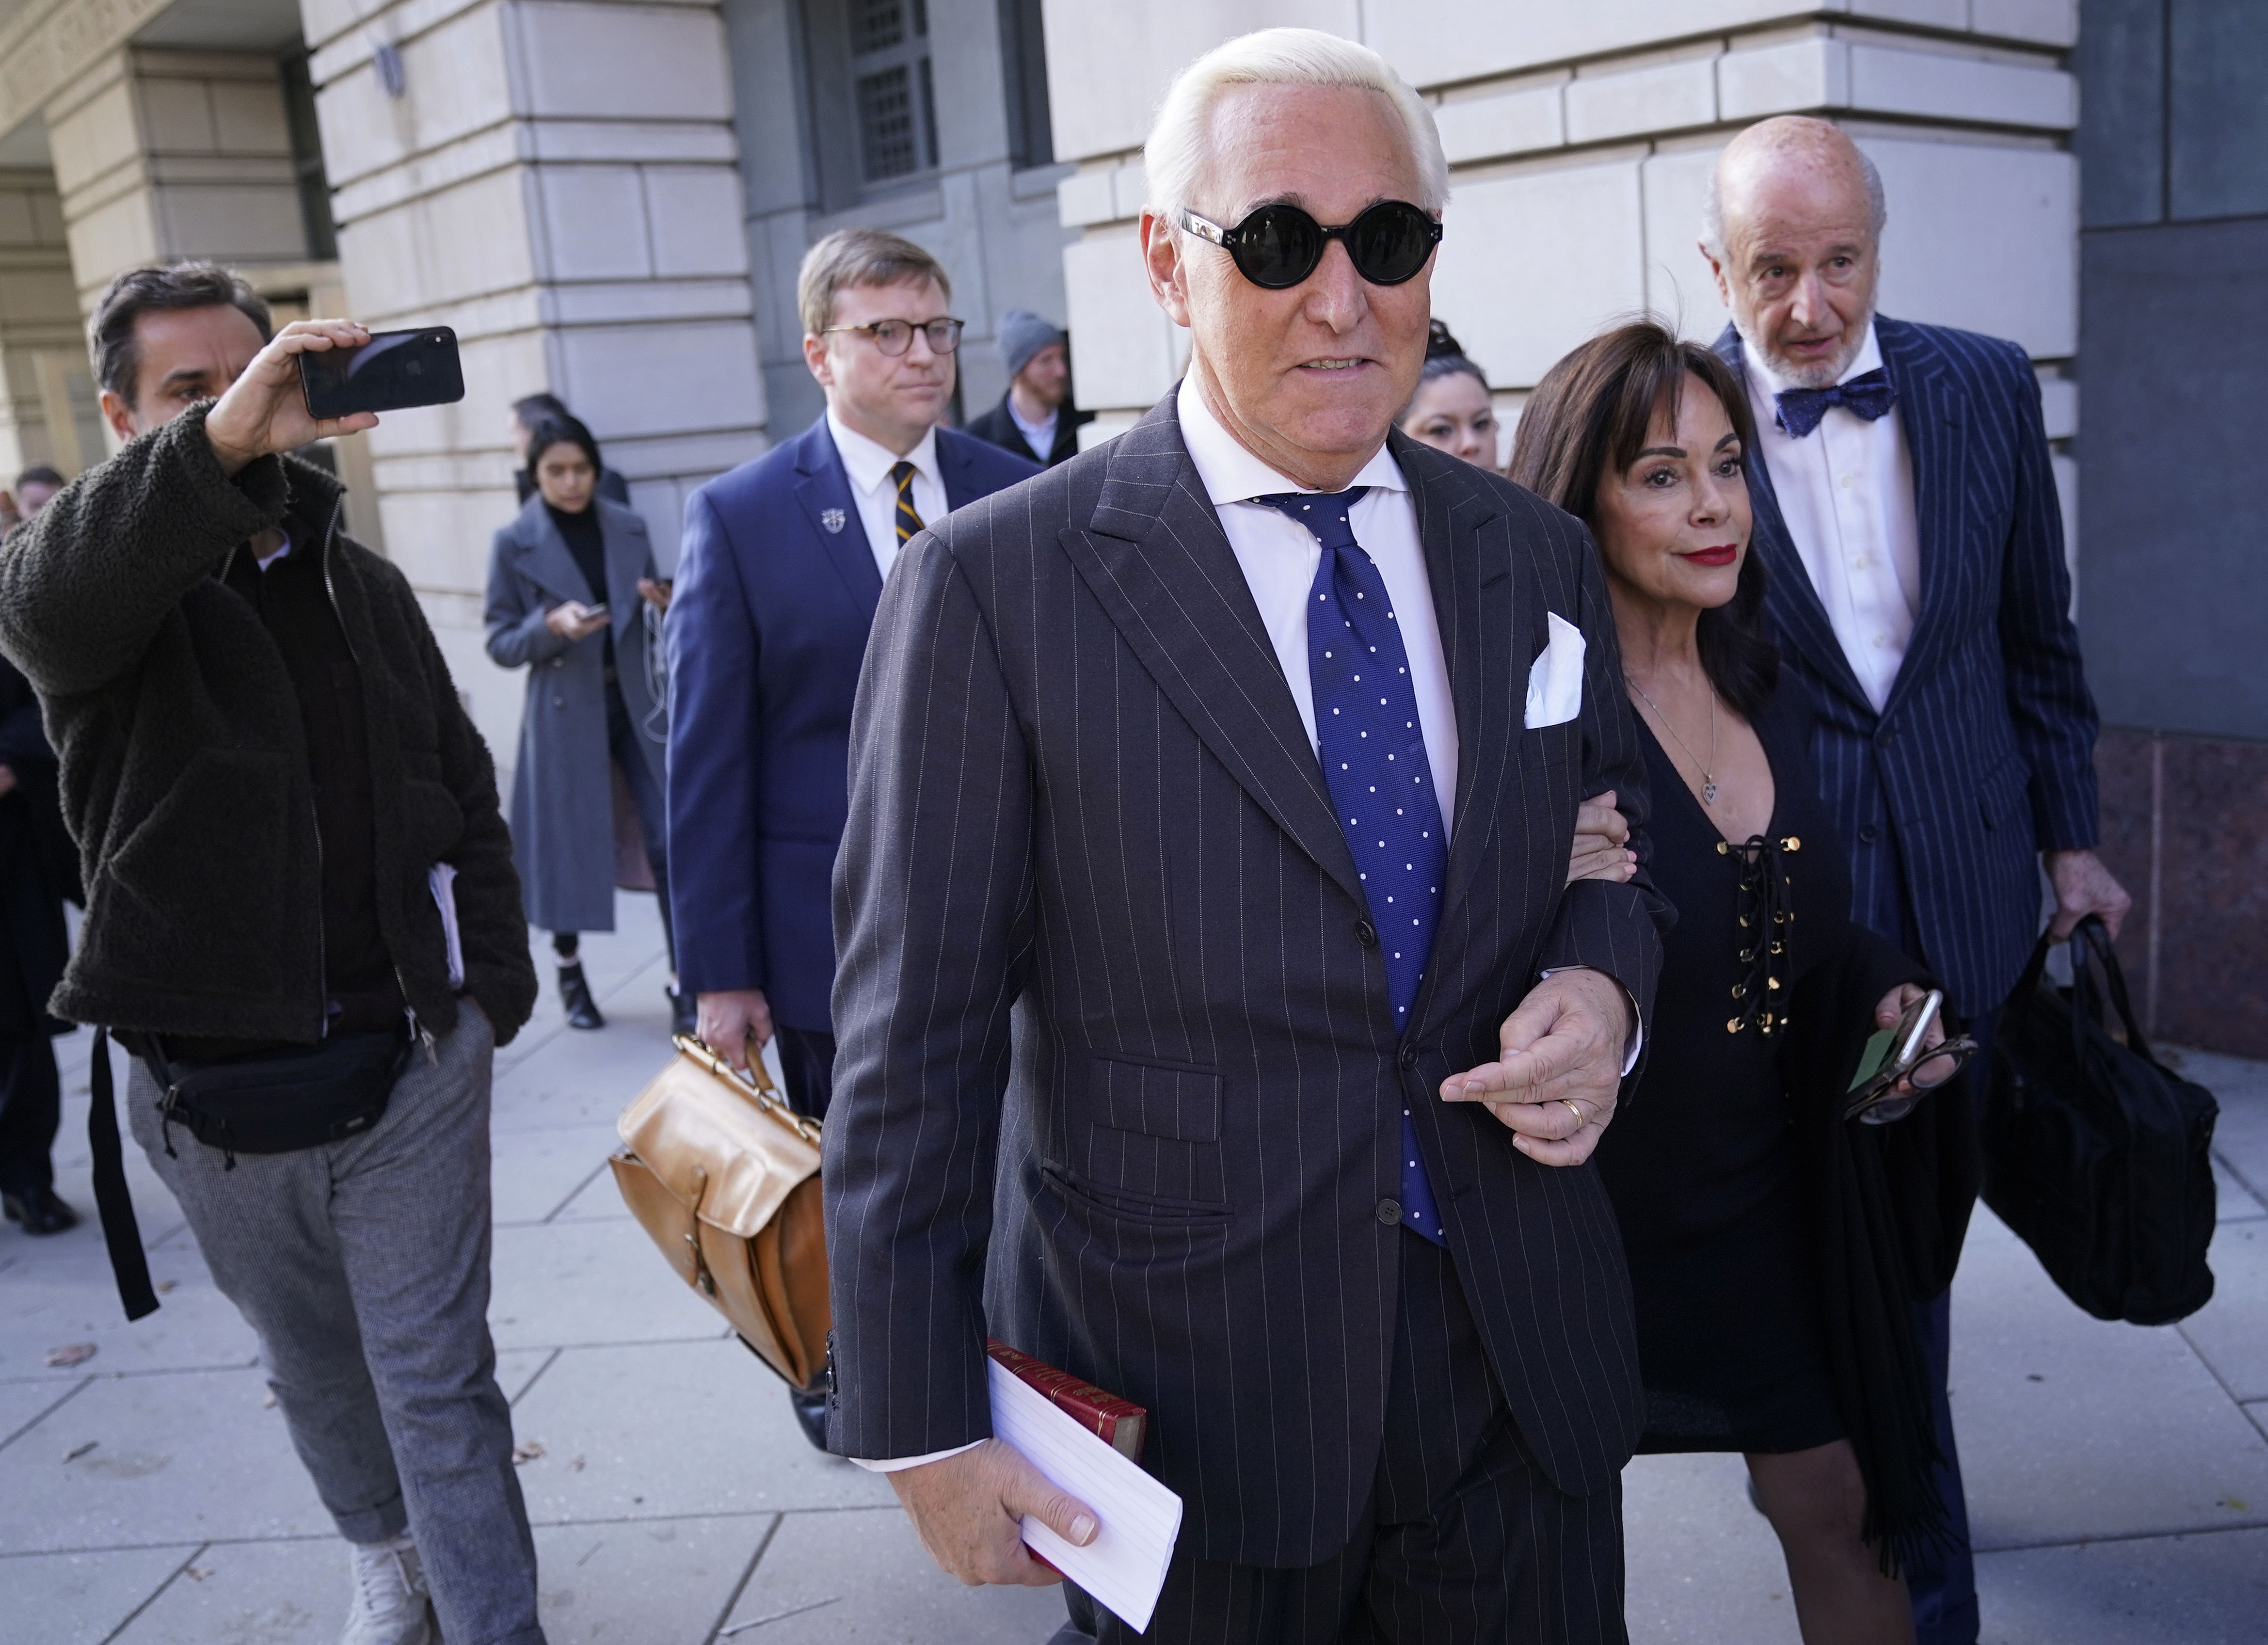 WASHINGTON, DC - NOVEMBER 15: Former advisor to U.S. President Donald Trump, Roger Stone, departs the E. Barrett Prettyman United States Courthouse with his wife Nydia after being found guilty of obstructing a congressional investigation into Russia's interference in the 2016 election on November 15, 2019 in Washington, DC. Stone faced seven felony charges and was found guilty on all counts. (Photo by Win McNamee/Getty Images)